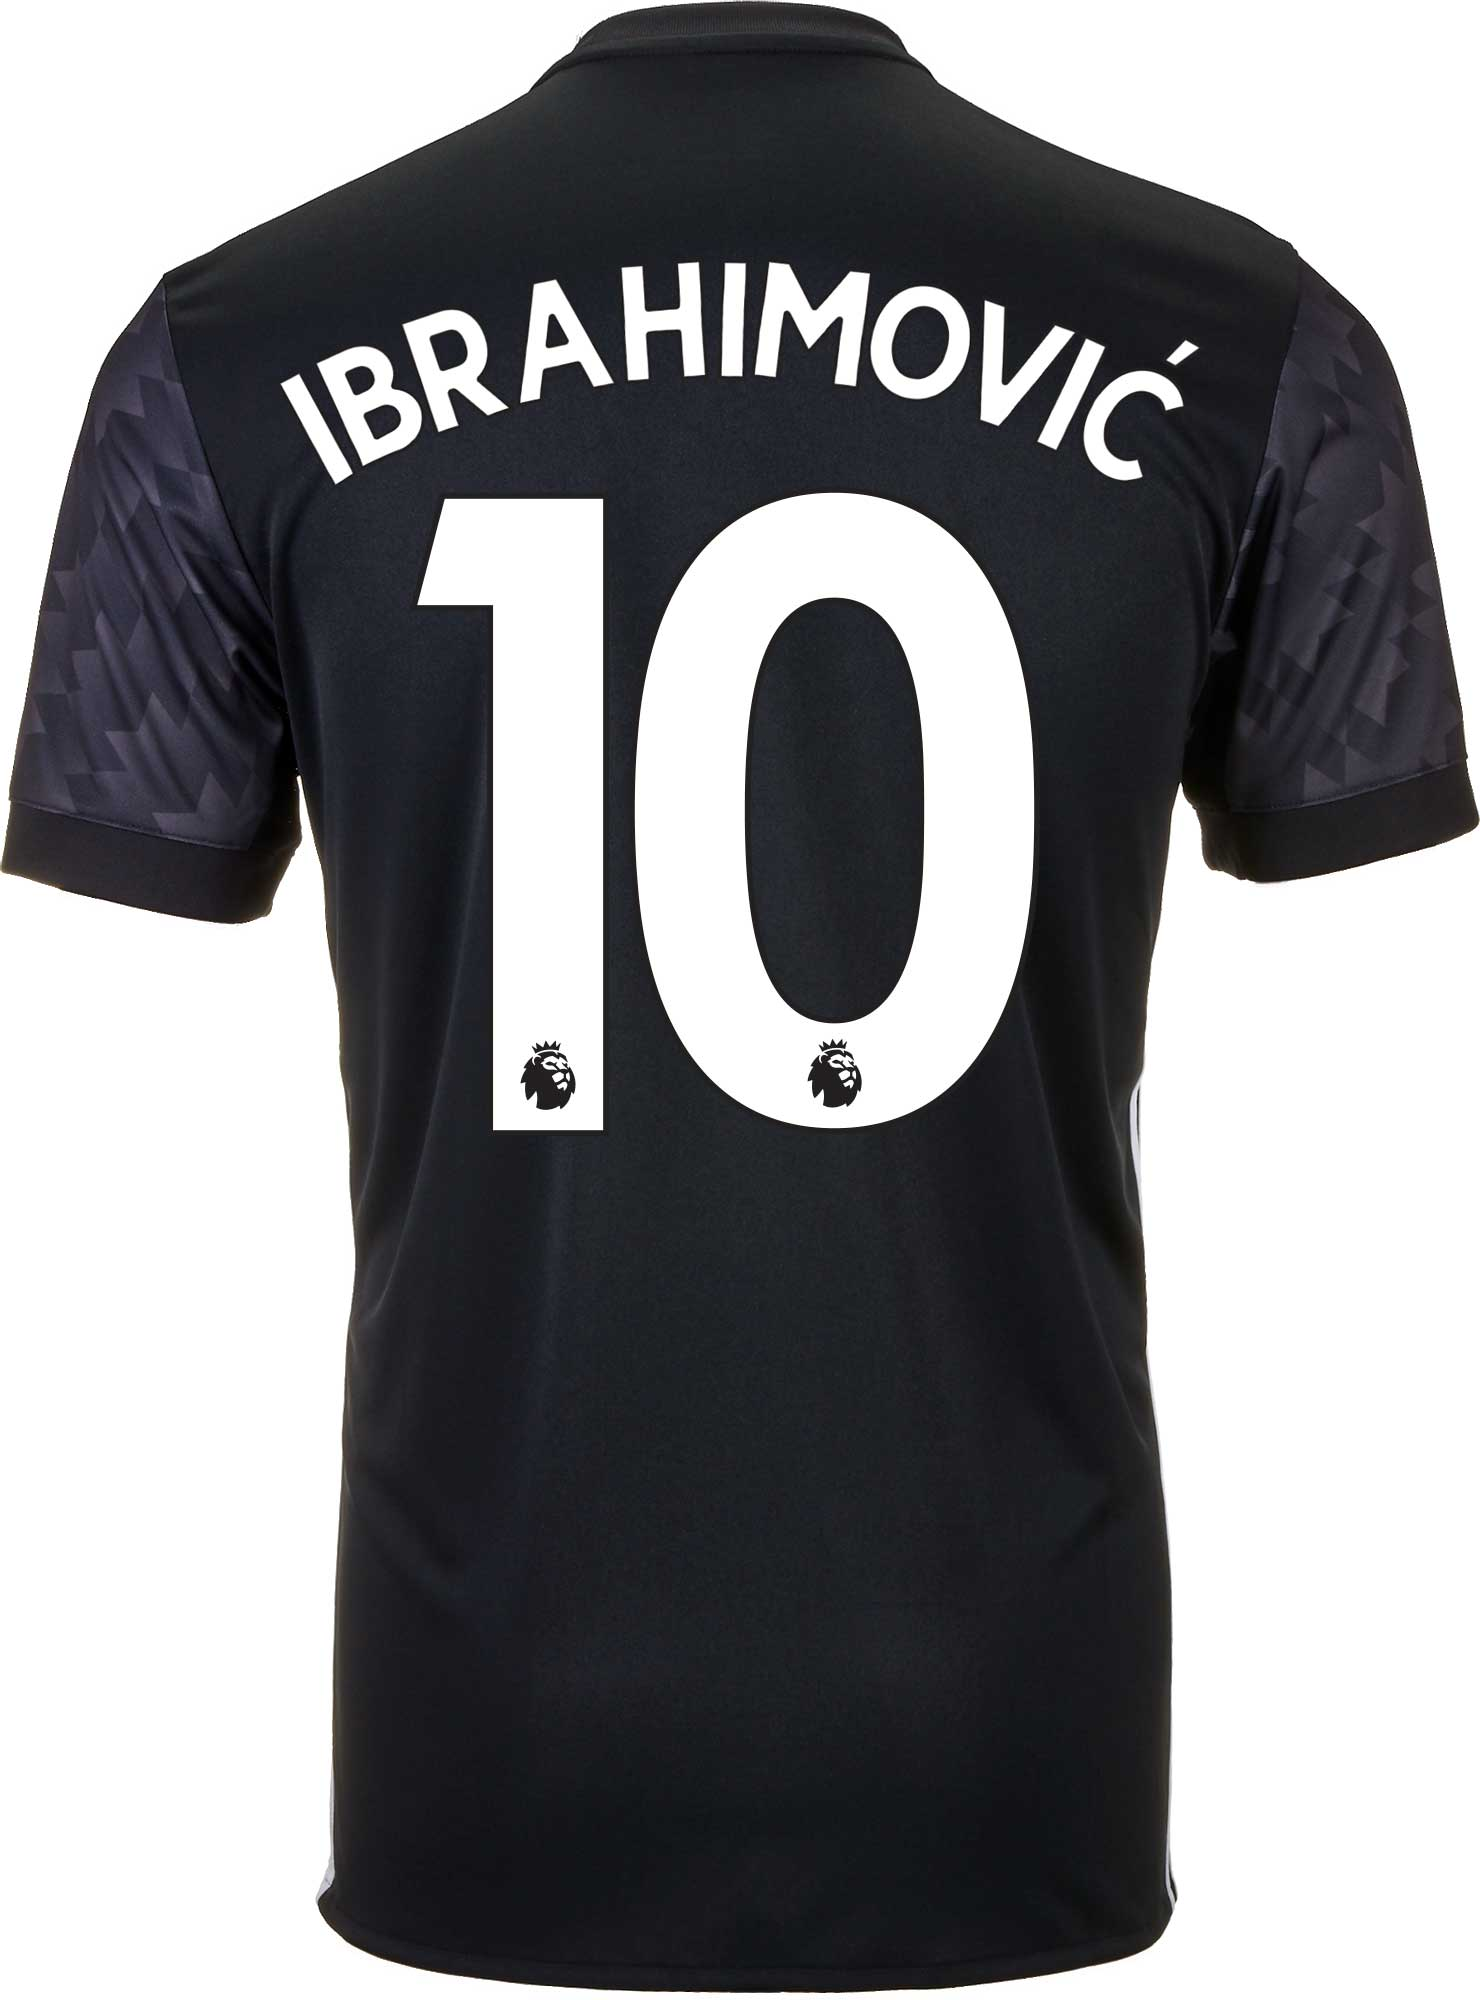 buy popular 7face 1145a adidas Zlatan Ibrahimovic Manchester United Away Jersey 2017 ...